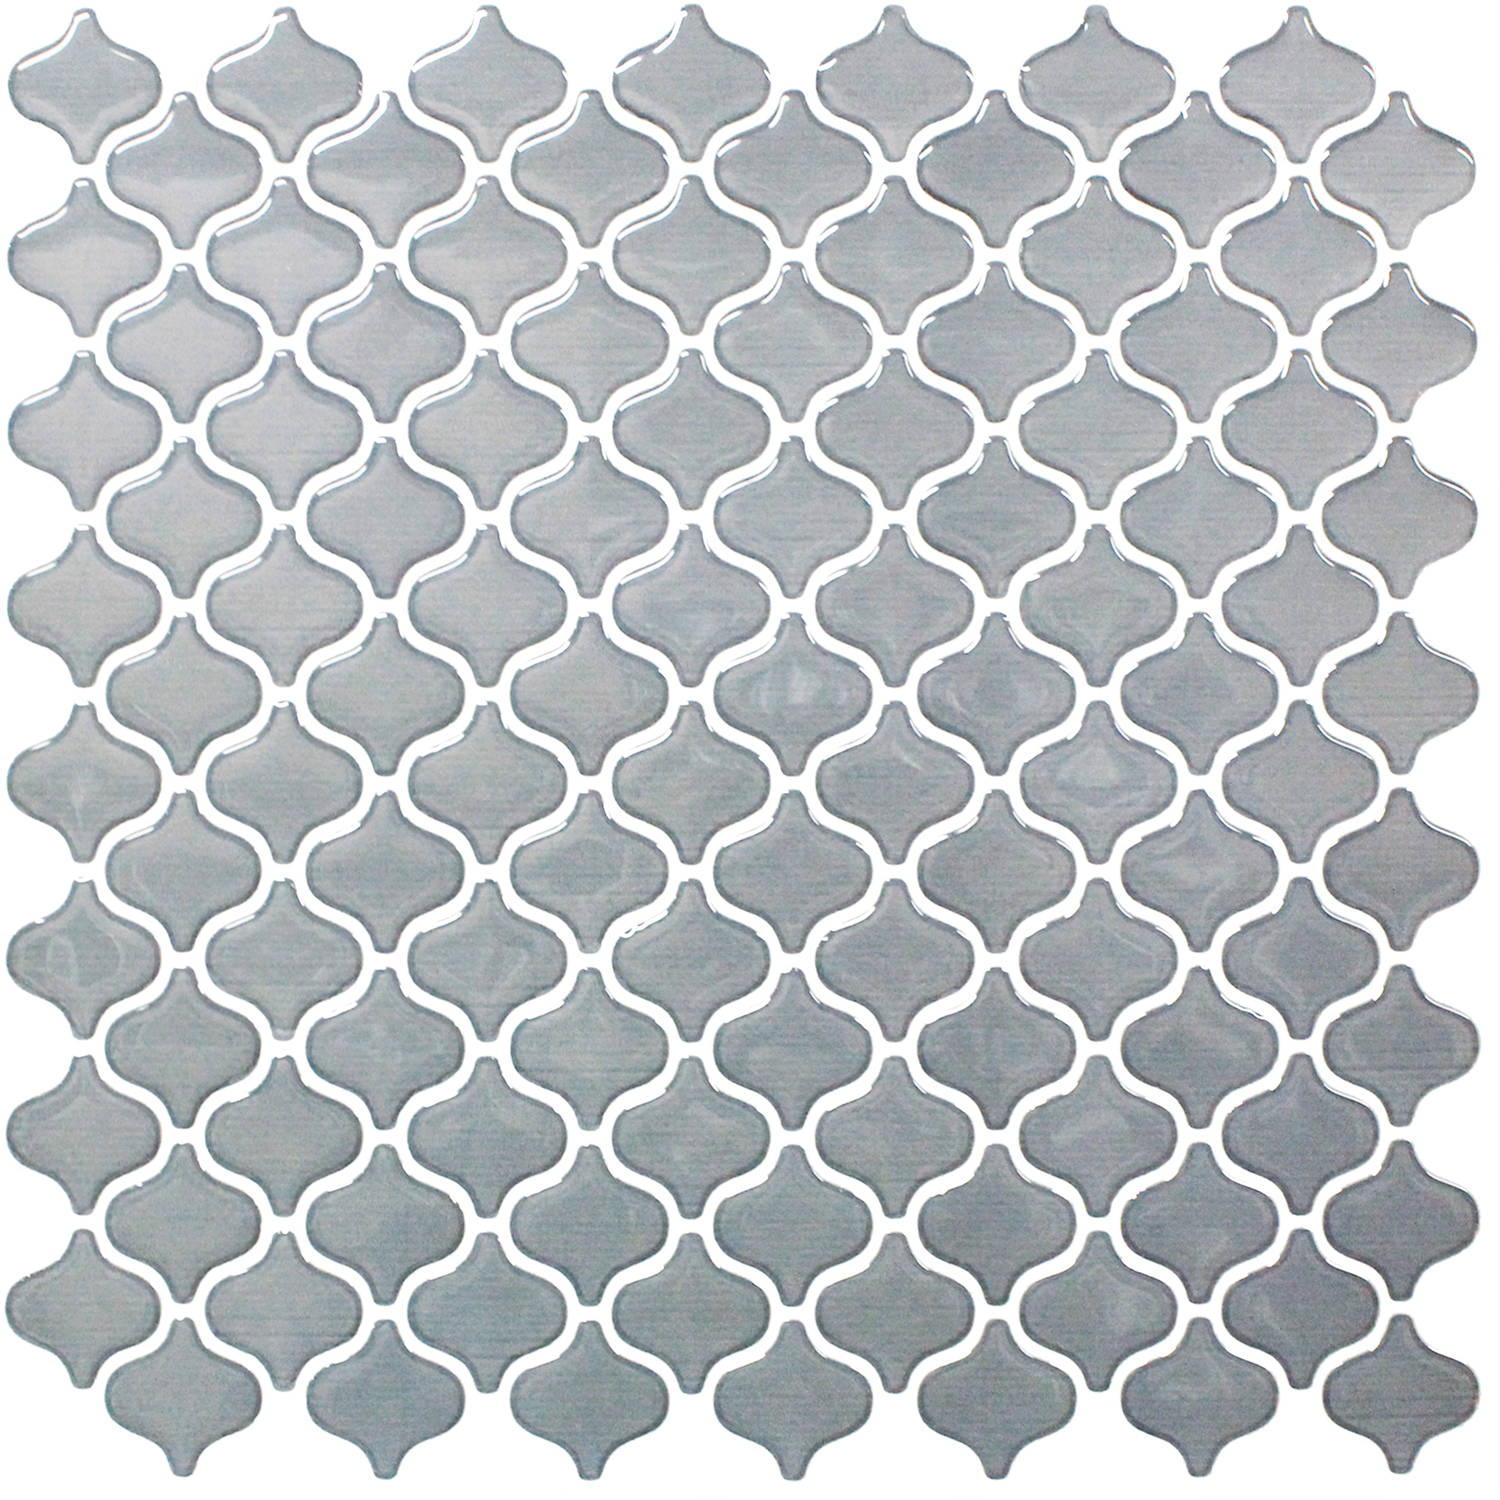 "BeausTile Decorative Adhesive Faux Tile Sheets, 12.2"" x 12.2"" 4-Piece, Grigio"